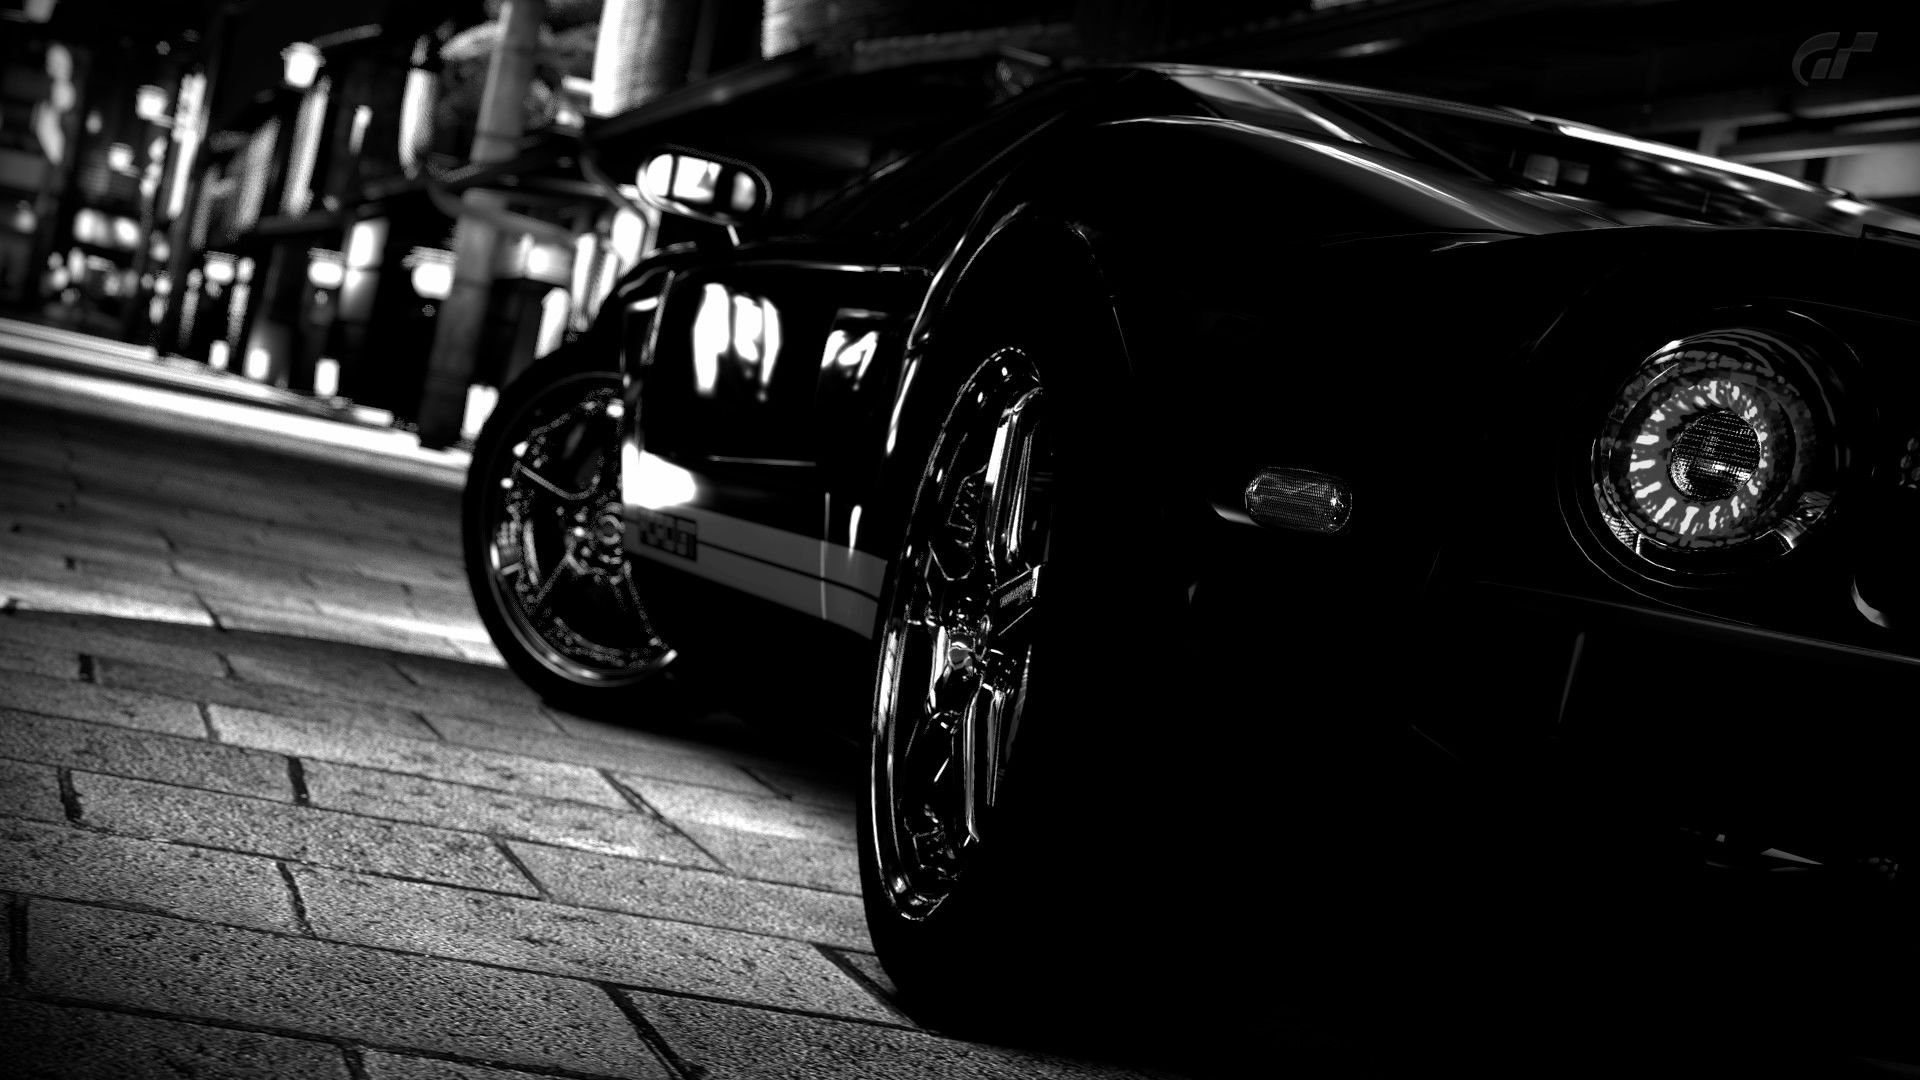 Dark Car Phone Wallpaper Iphone Wallpaper For Guys Best Iphone